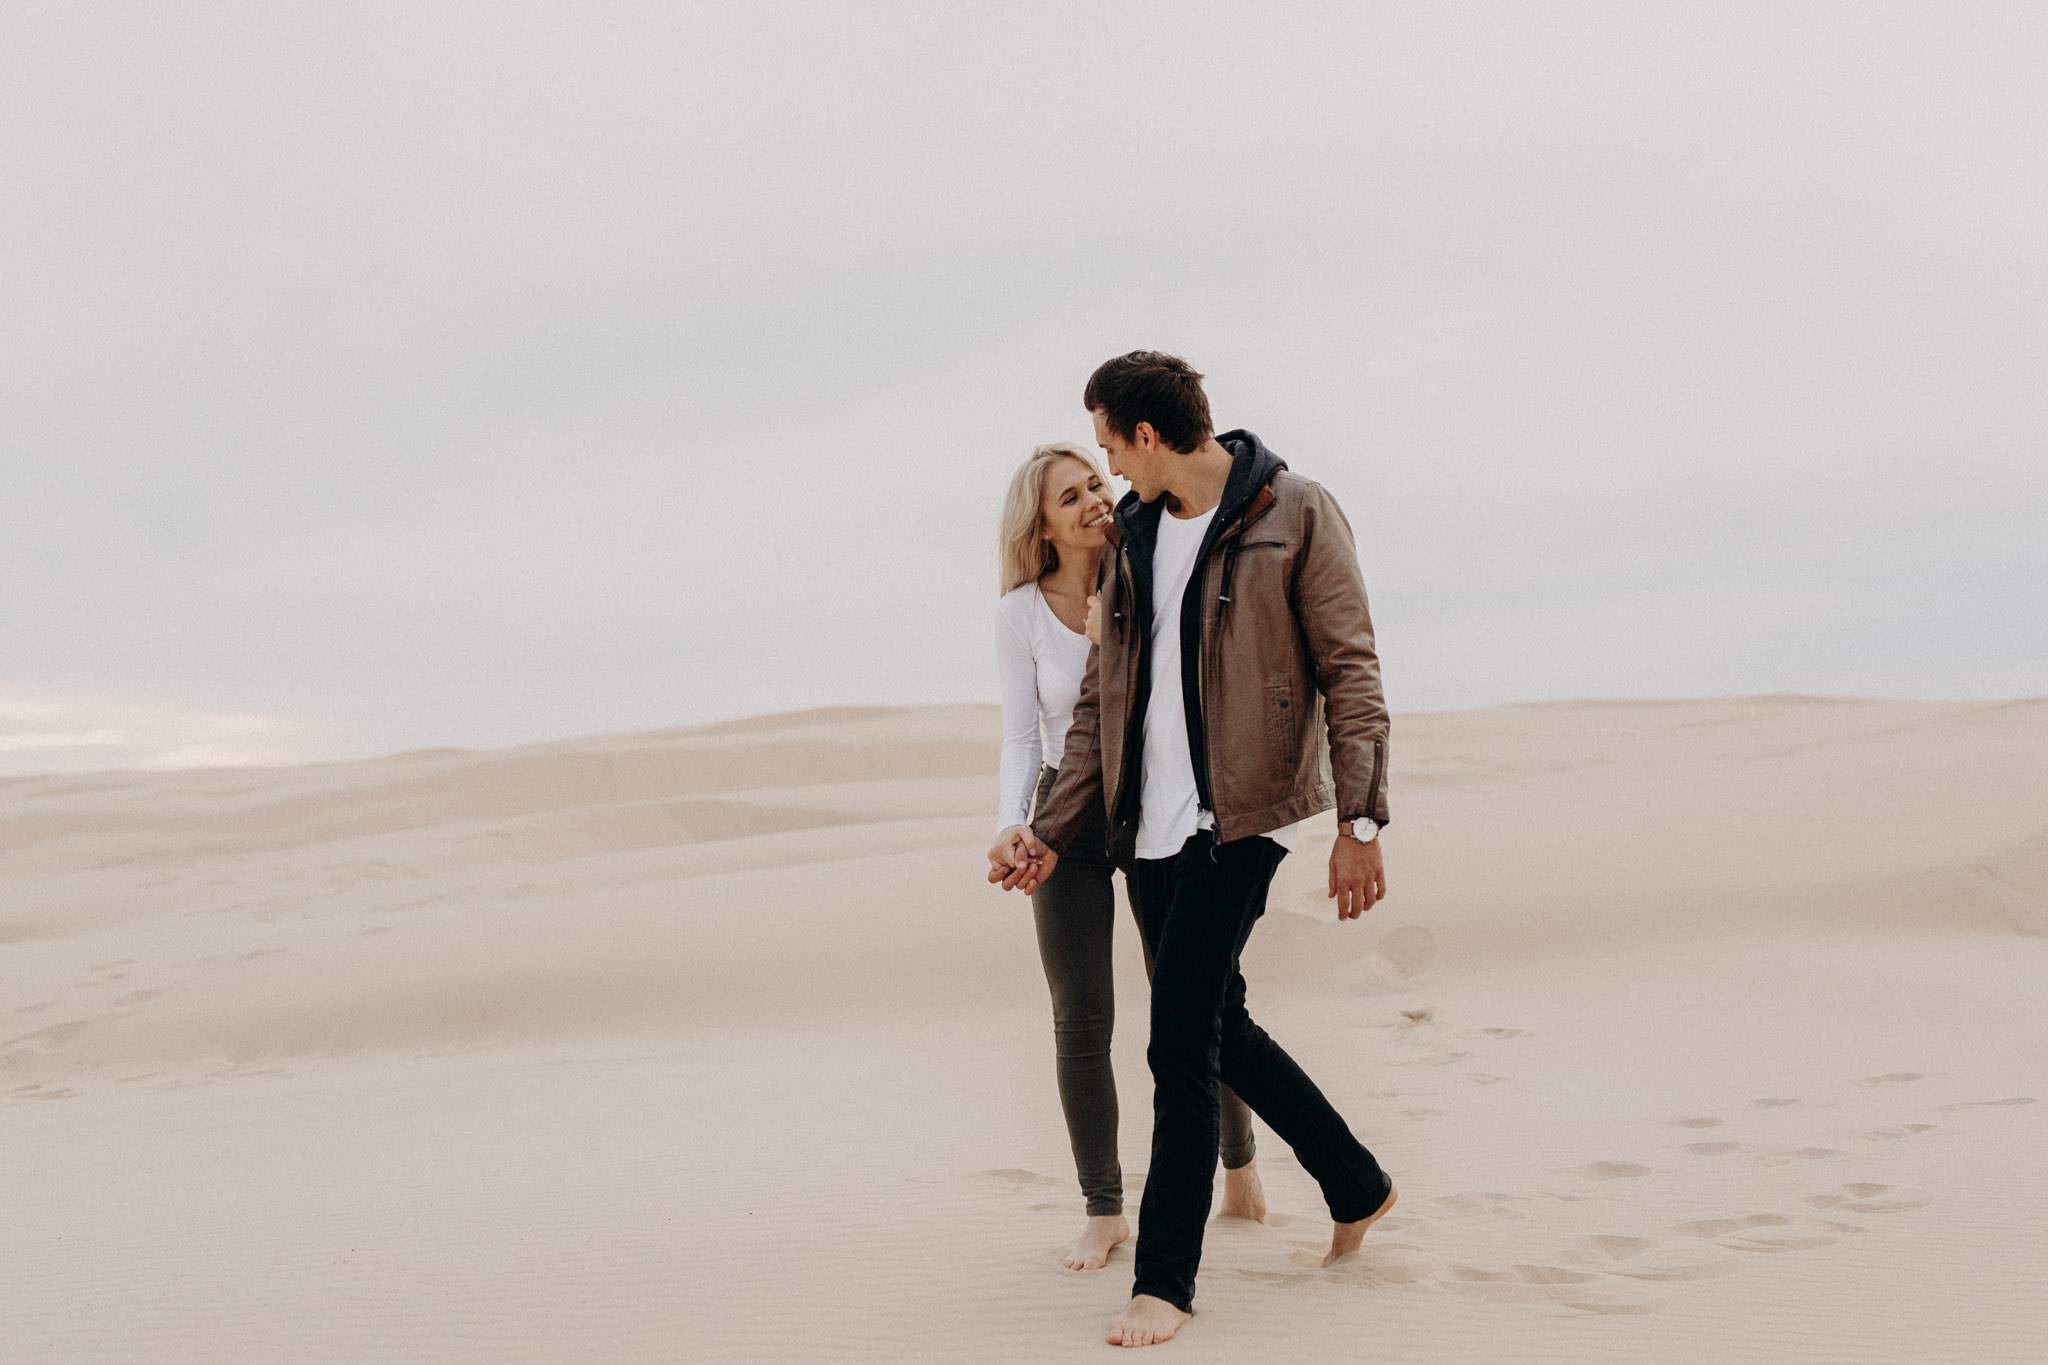 stockton dunes, engagement session, beach, photoshoot, engagement shoot, wedding photographer, maleny, mooloolaba, sunshine coast, byron bay, brisbane, couples, family photography, fun, natural, wedding photography